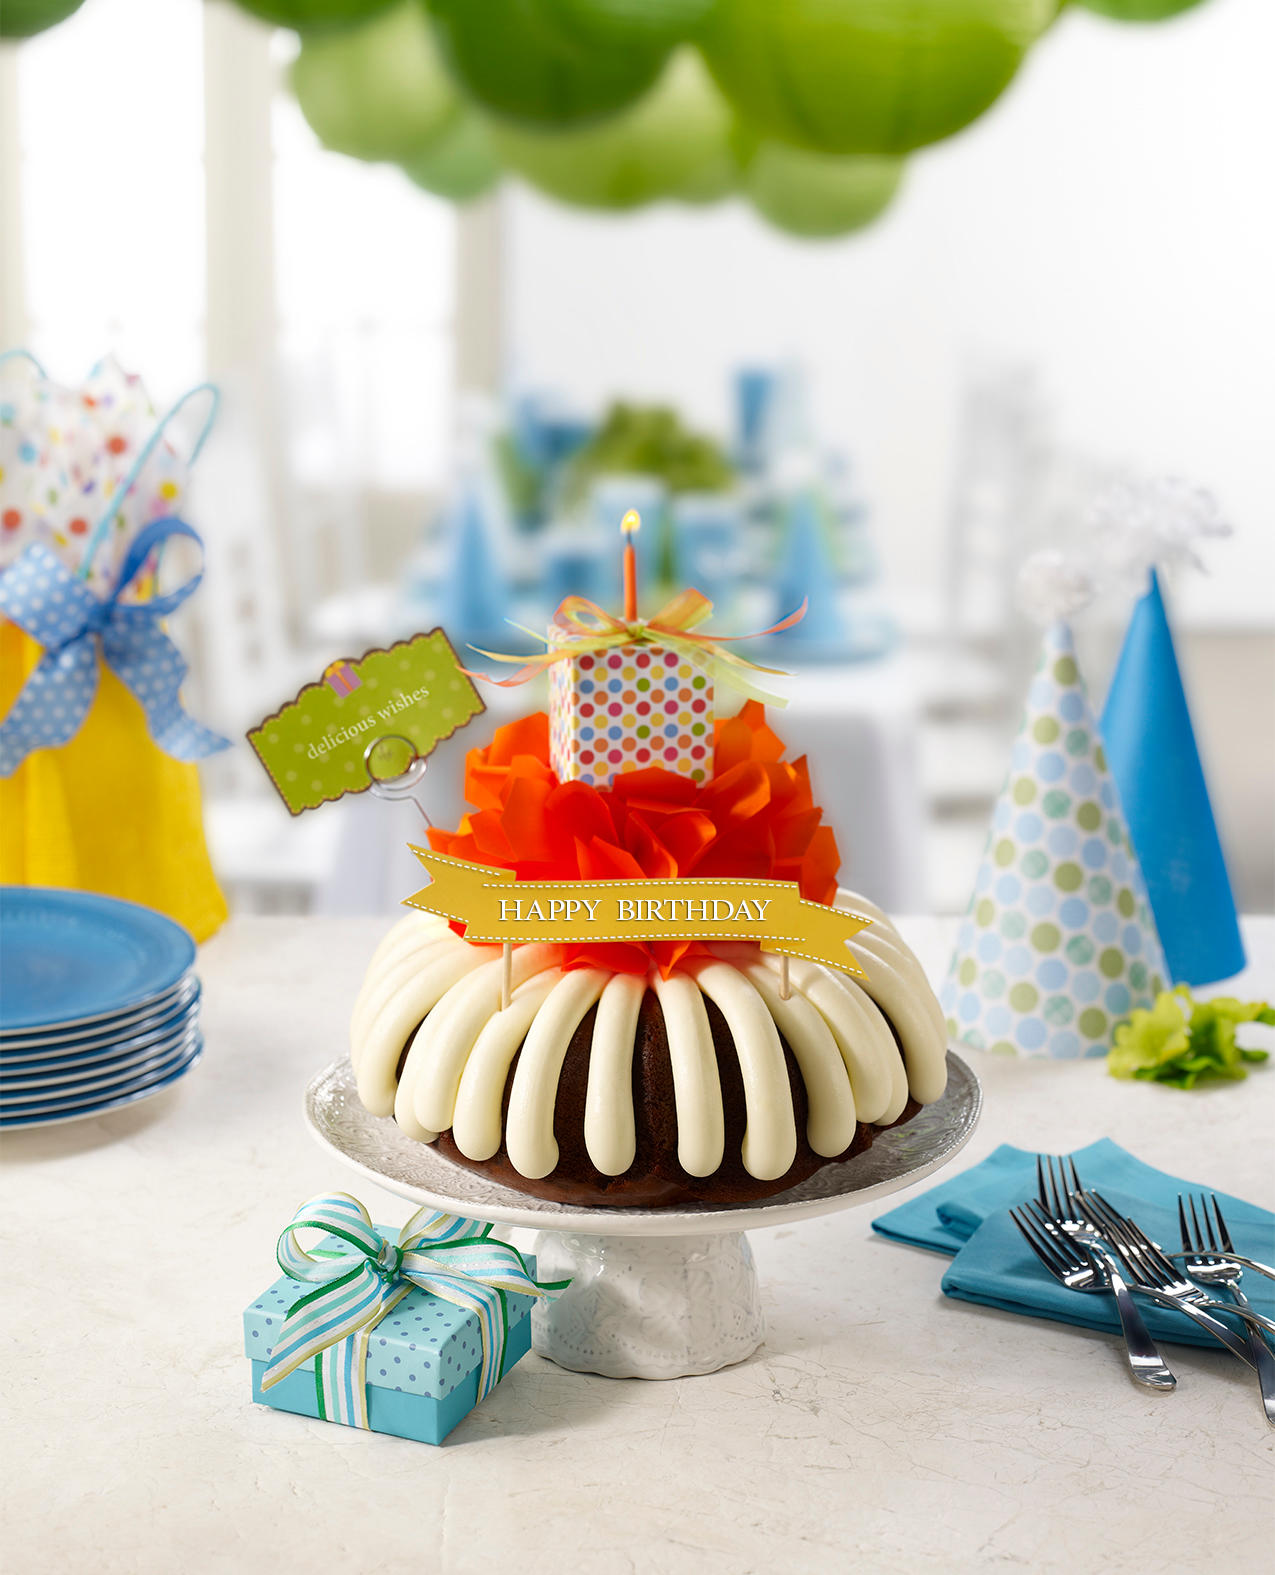 Magnificent Nothing Bundt Cakes 7155 S Rainbow Blvd Ste 120 Las Vegas Nv Funny Birthday Cards Online Elaedamsfinfo